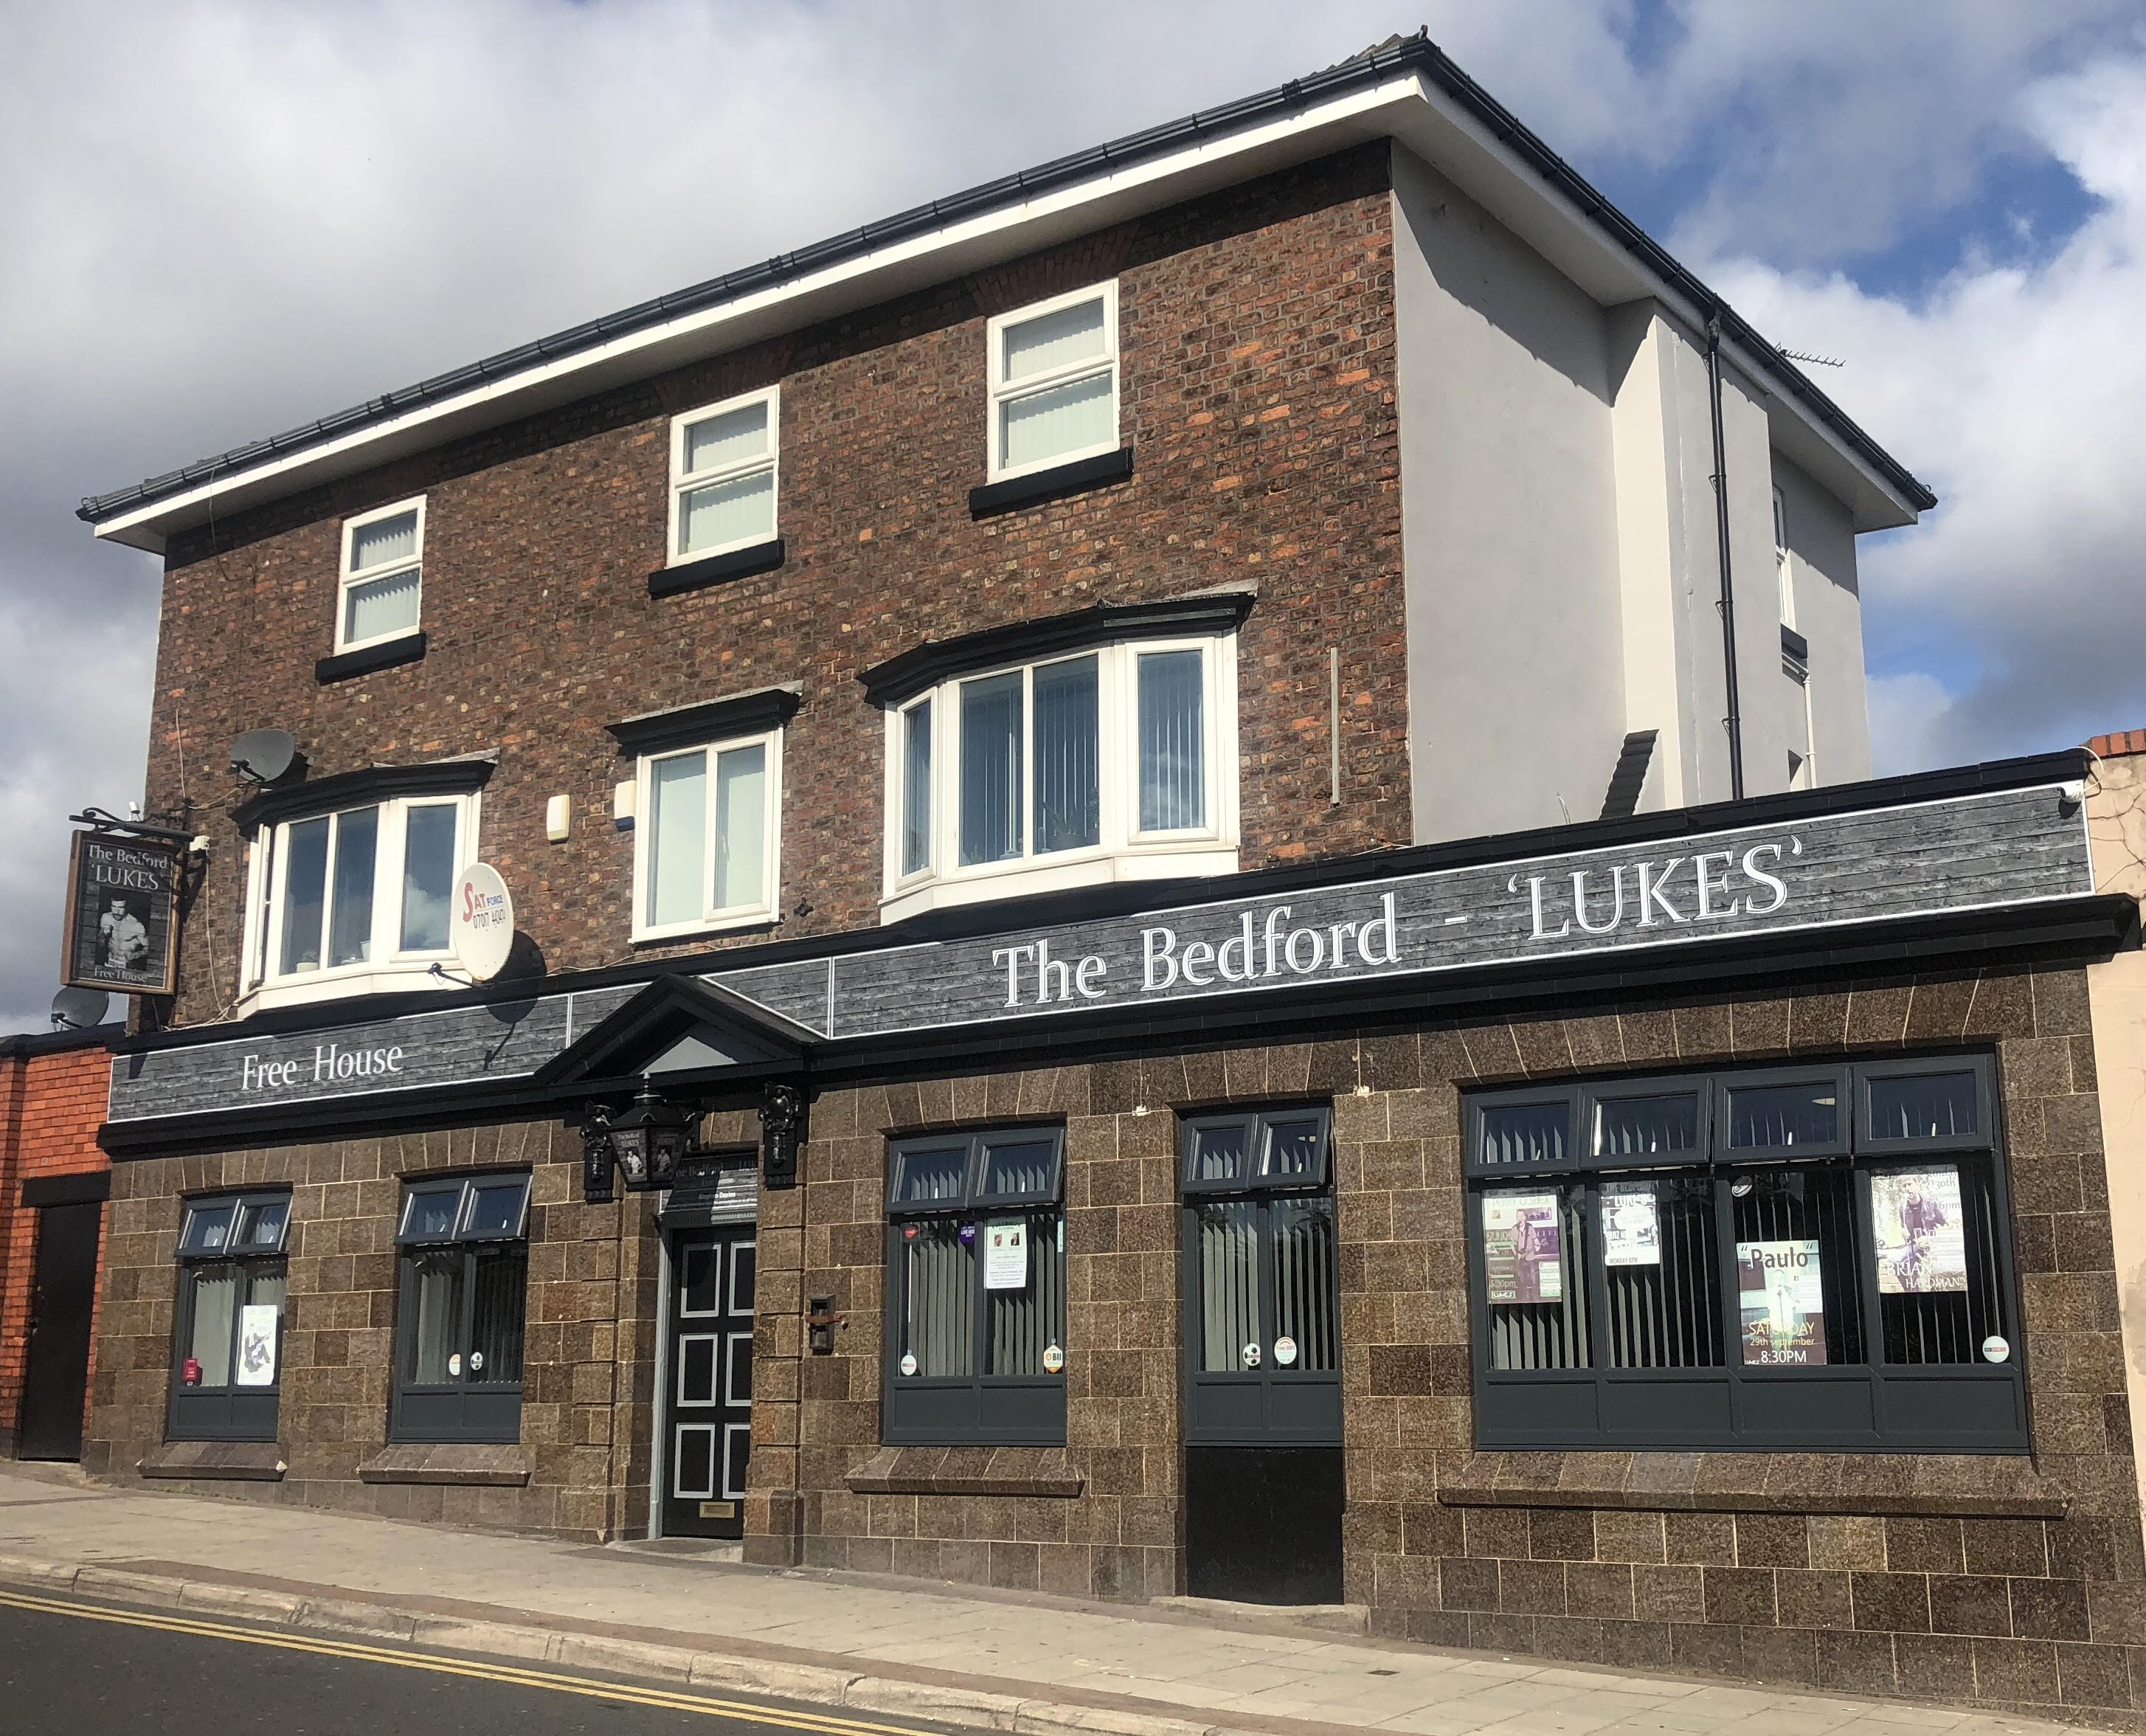 The Bedford Lukes Pub Rock Ferry